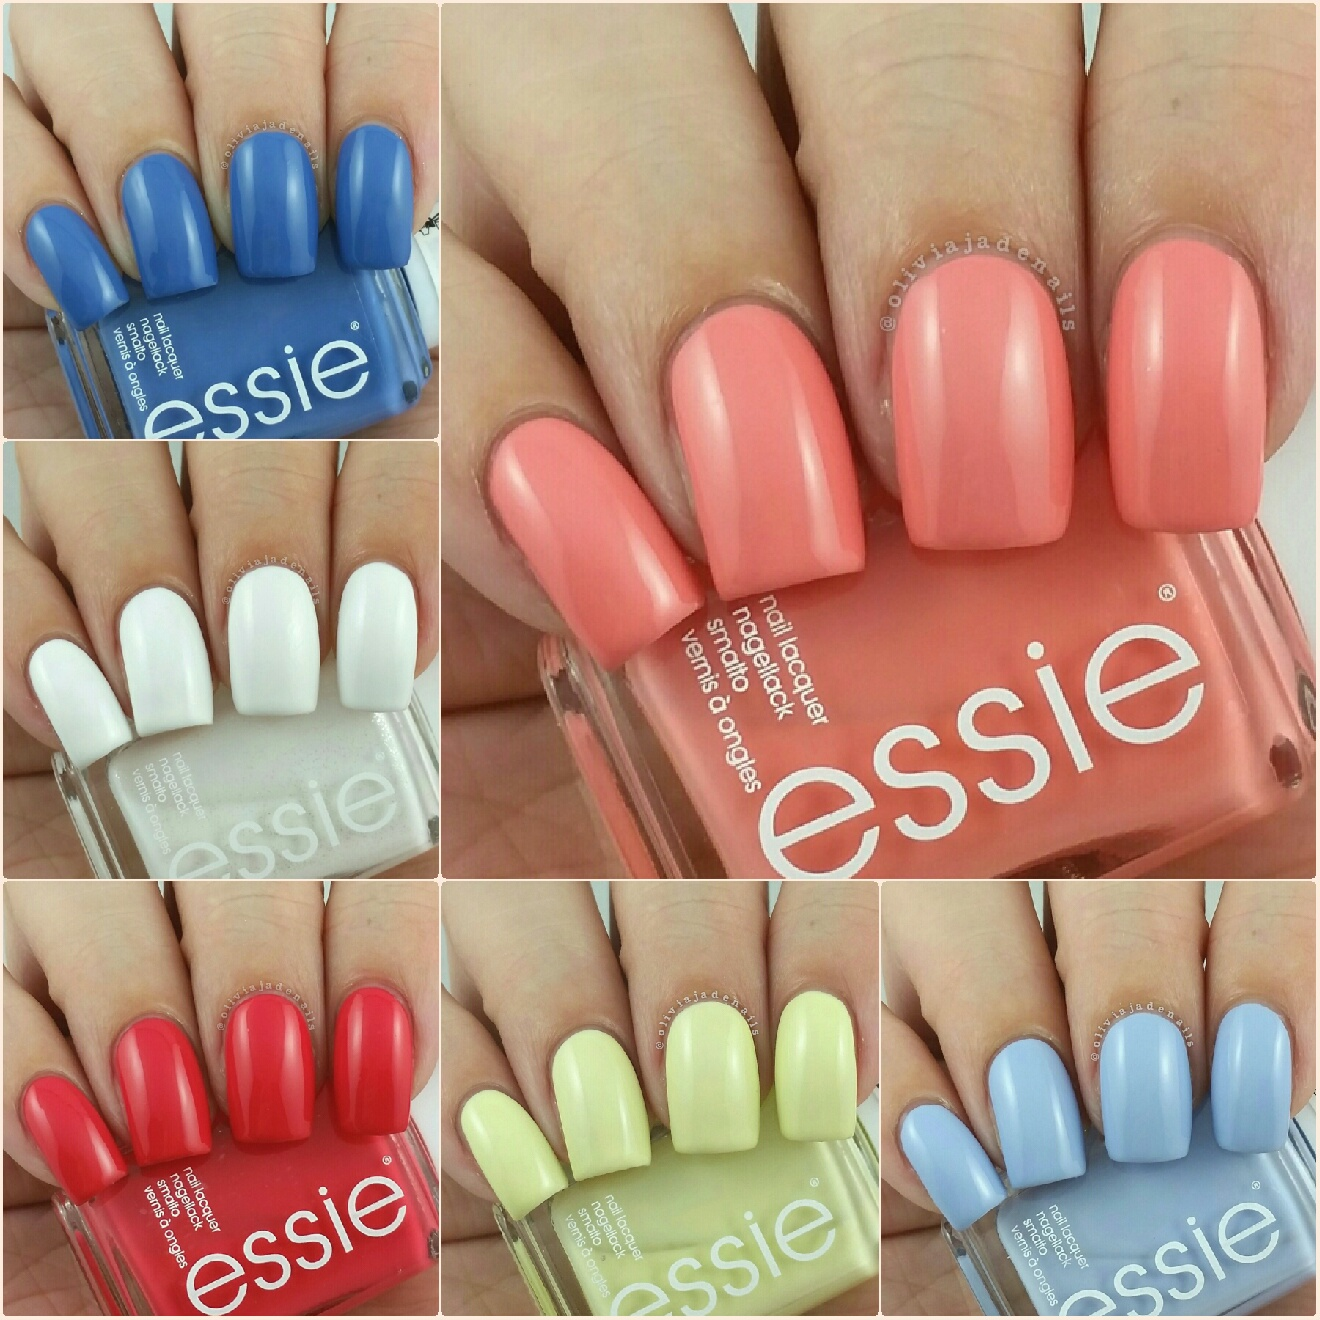 Olivia Jade Nails: Essie Summer 2015 Collection - Swatches & Review